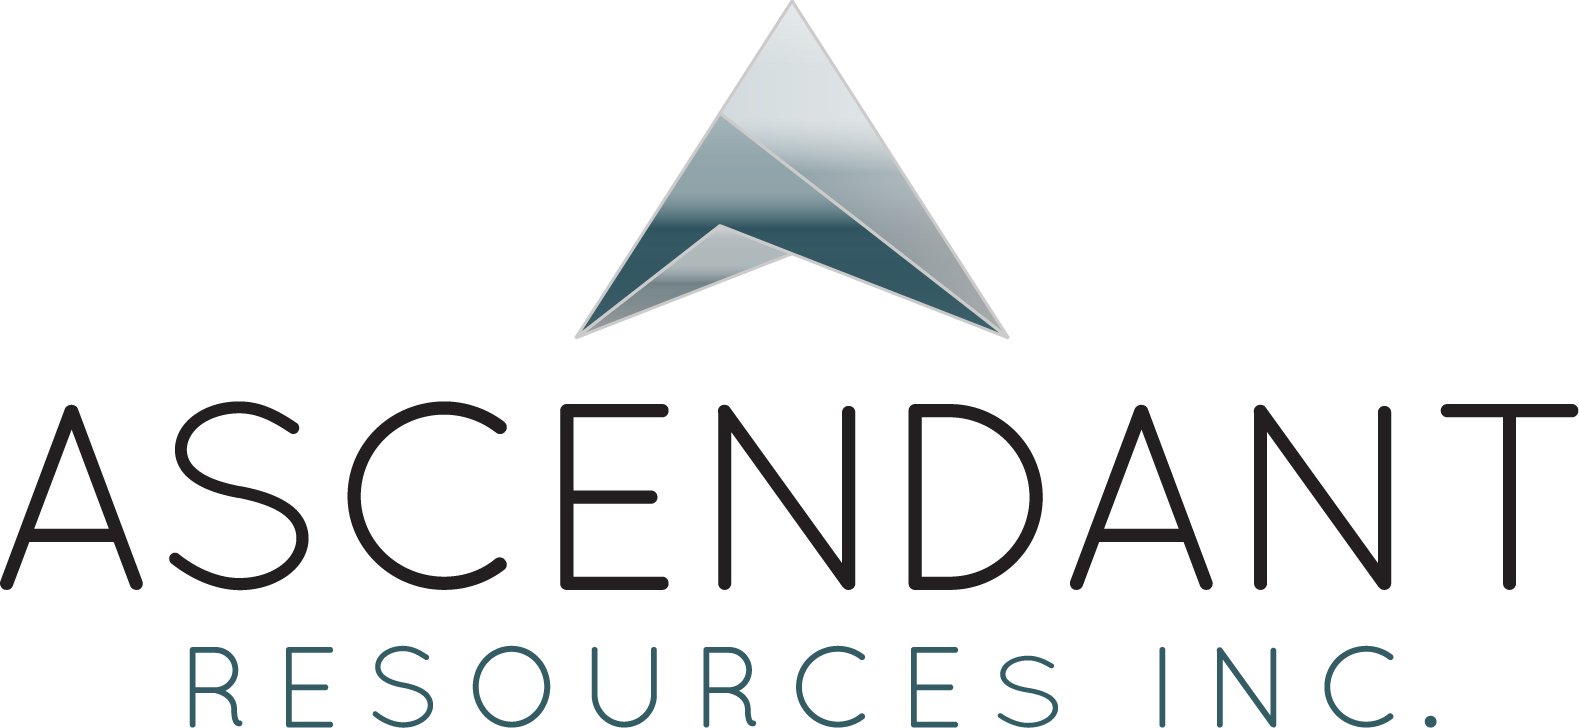 Ascendant Resources to Begin Phase 2 Metallurgical Test Work at its Lagoa Salgada VMS Project in Portugal